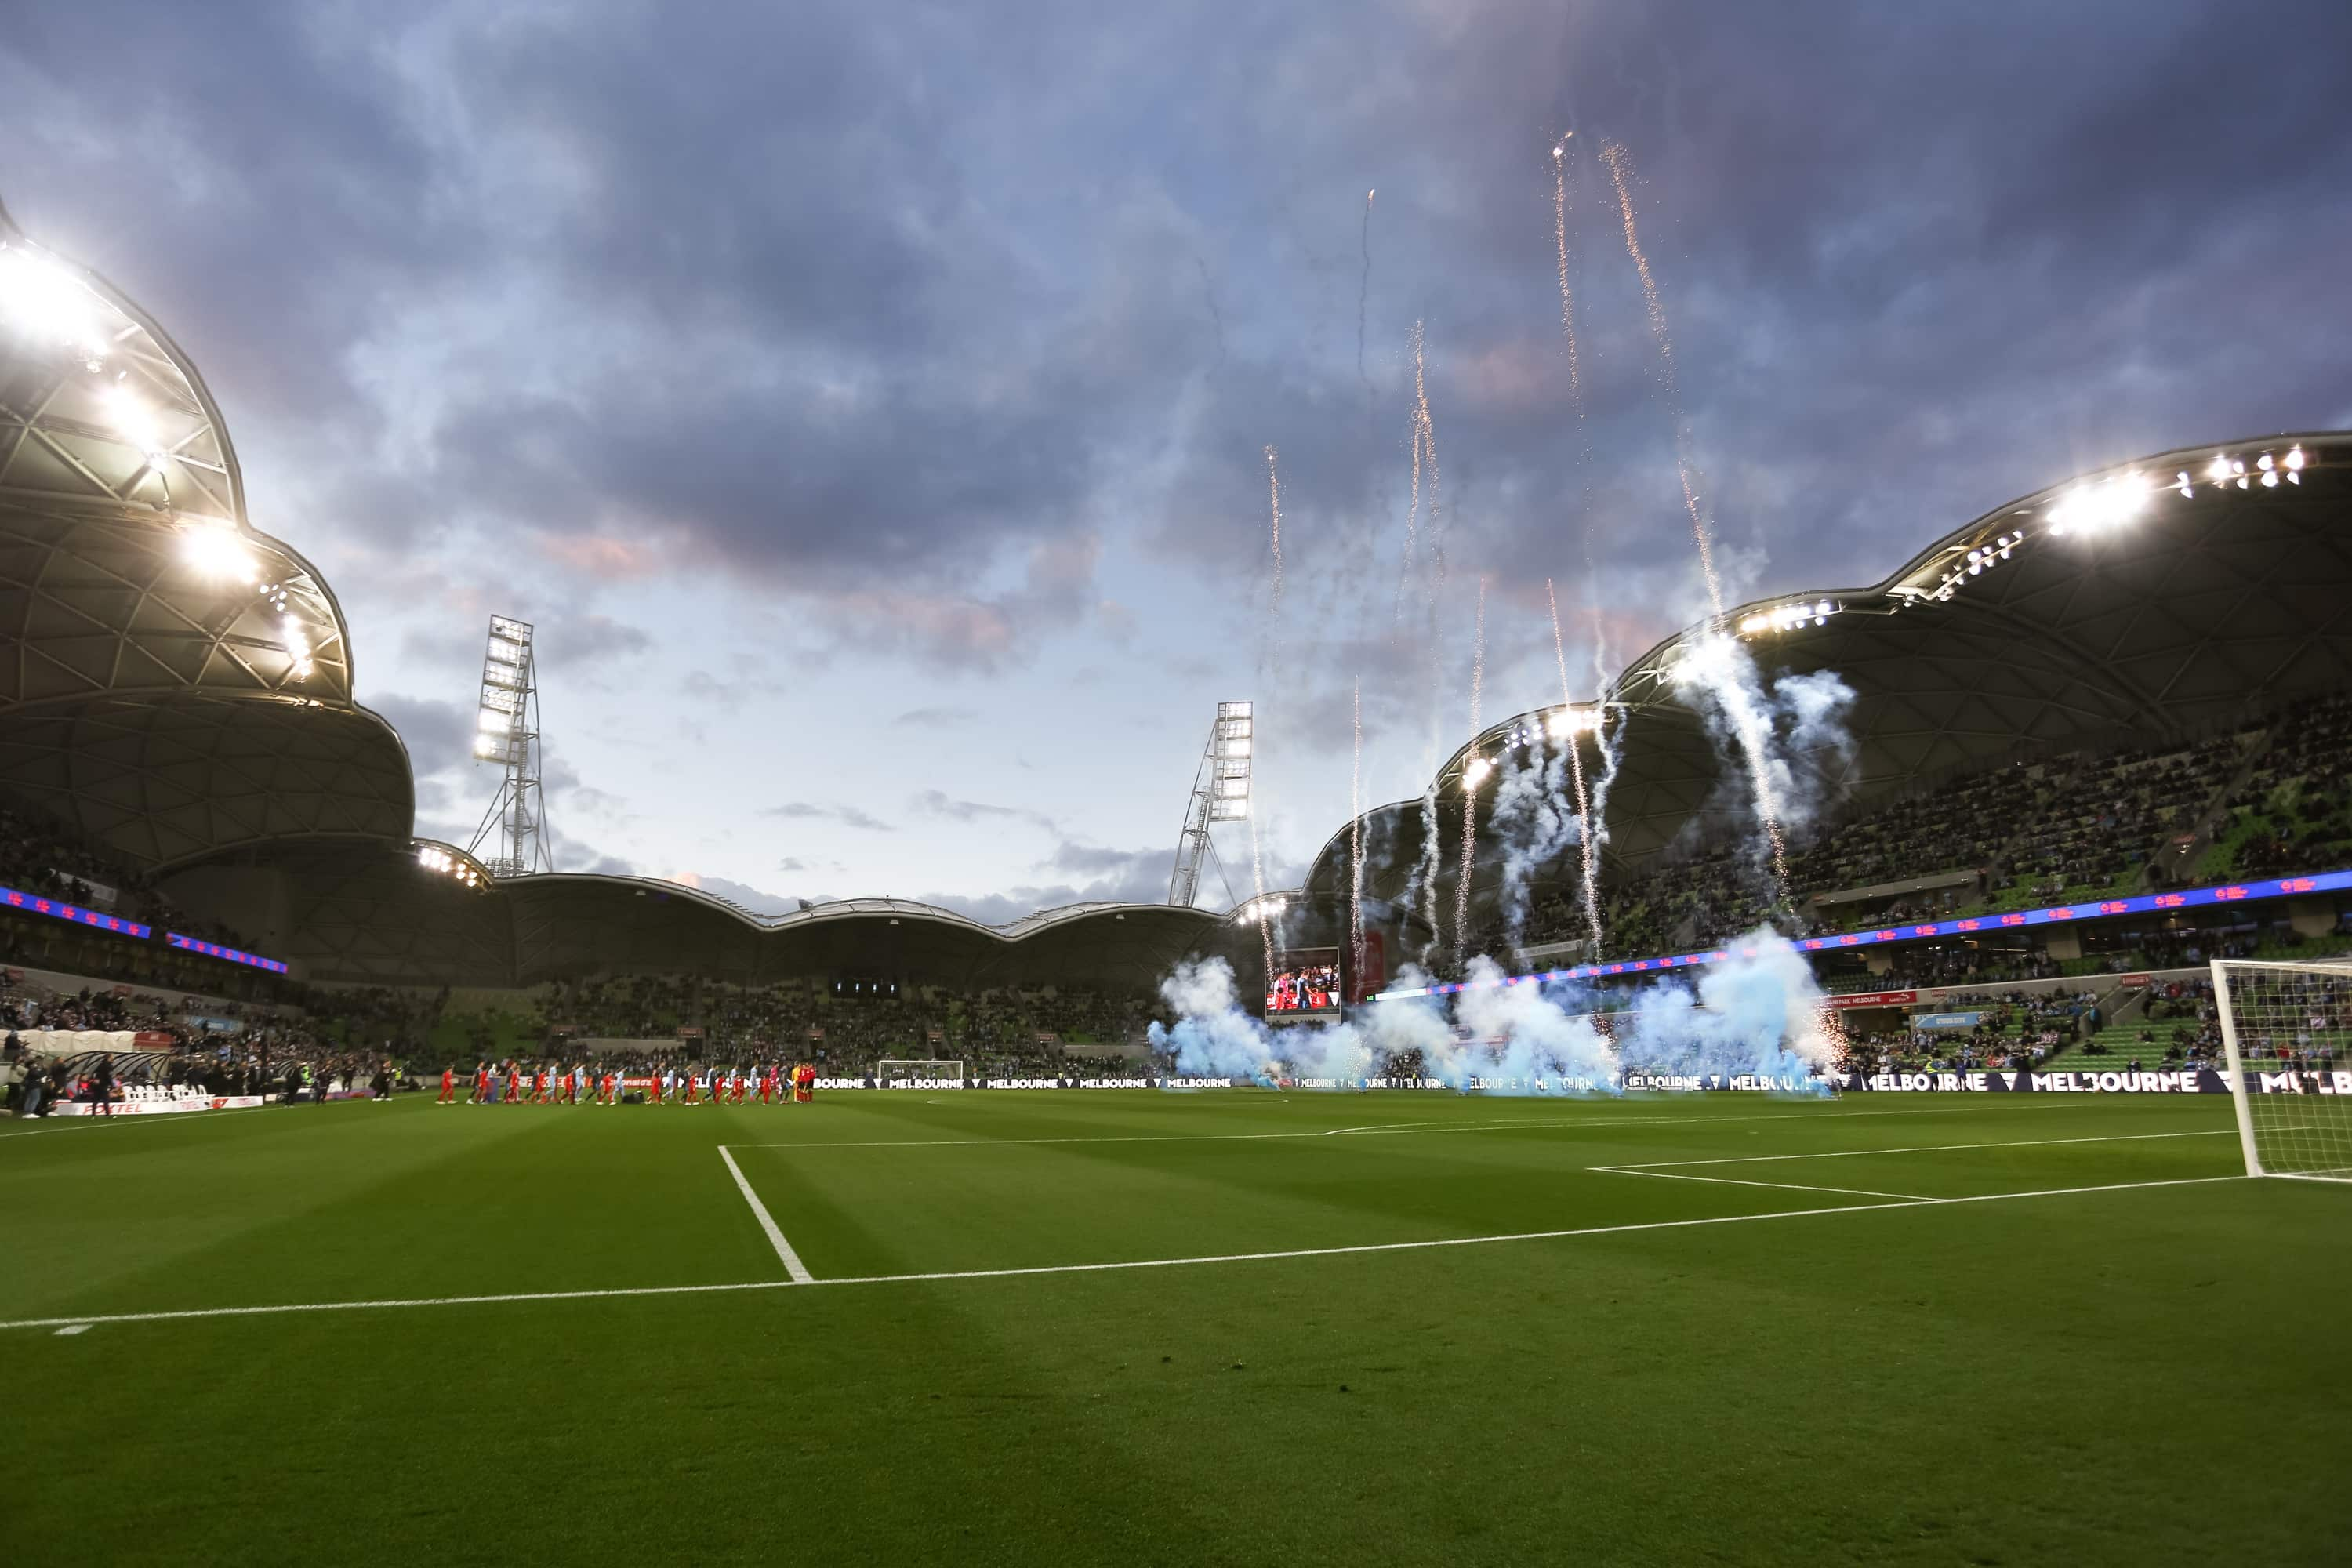 MELBOURNE, AUSTRALIA - JUNE 27: Players walk onto the field as flanked by fireworks during the A-League Grand-Final soccer match between Melbourne City FC and Sydney FC on June 27, 2021 at AAMI Park in Melbourne, Australia. (Photo by Dave Hewison/Speed Media/Icon Sportswire)